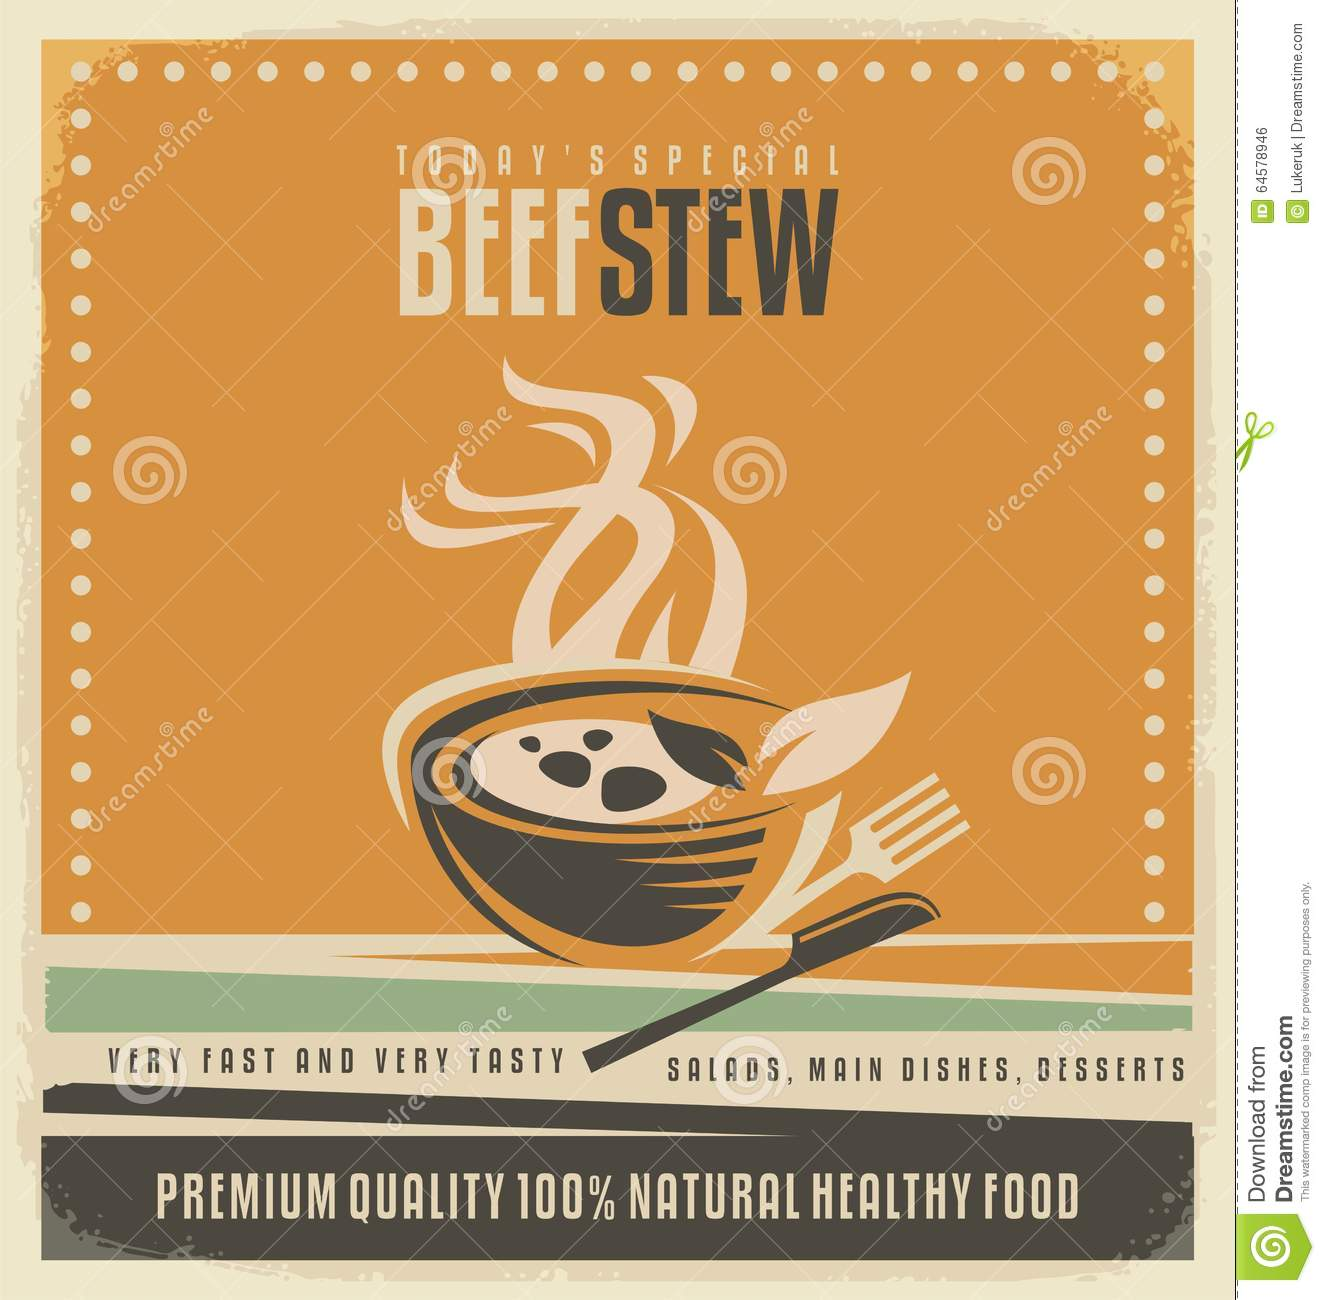 Beef stew retro poster layout stock vector illustration